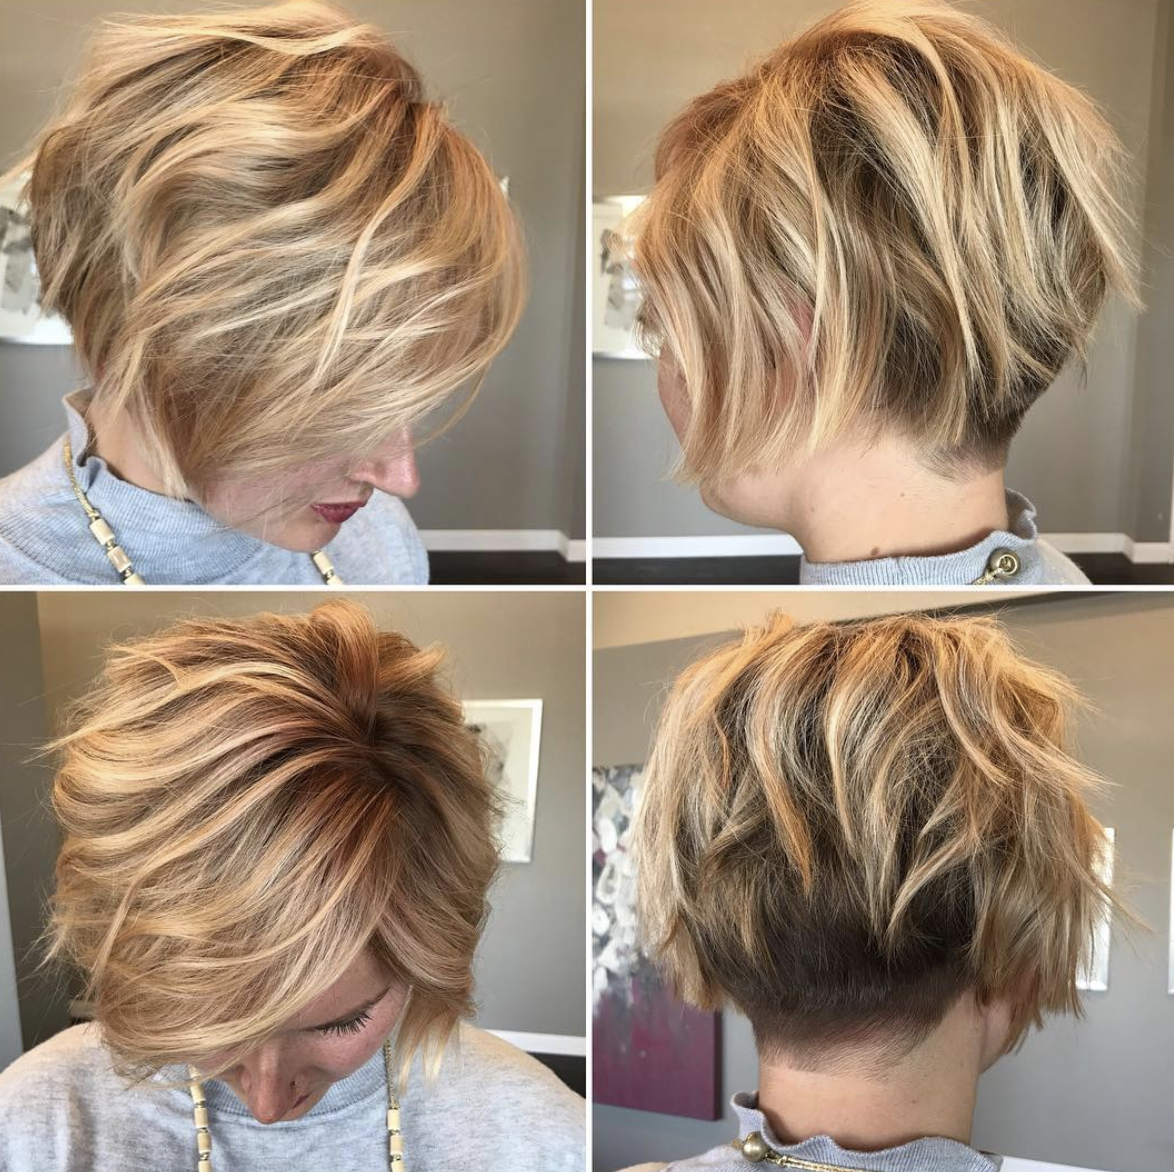 Short Bob Love The Tapered Back Short Hairstyles Fine Fine Hair Bob Hairstyles For Fine Hair